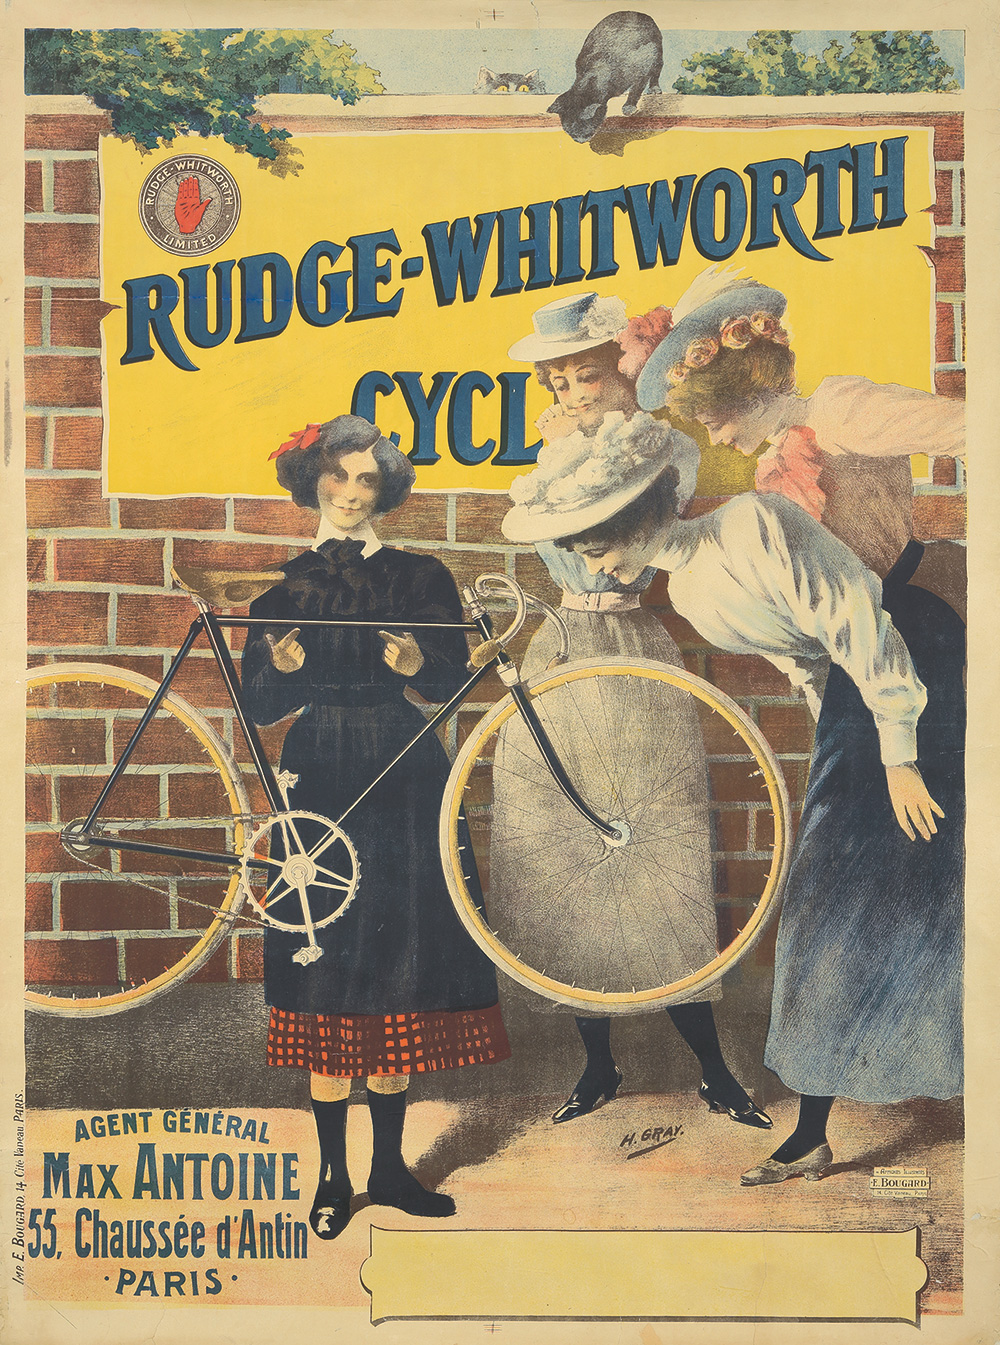 18. Rudge-Whitworth. Ca. 1900.